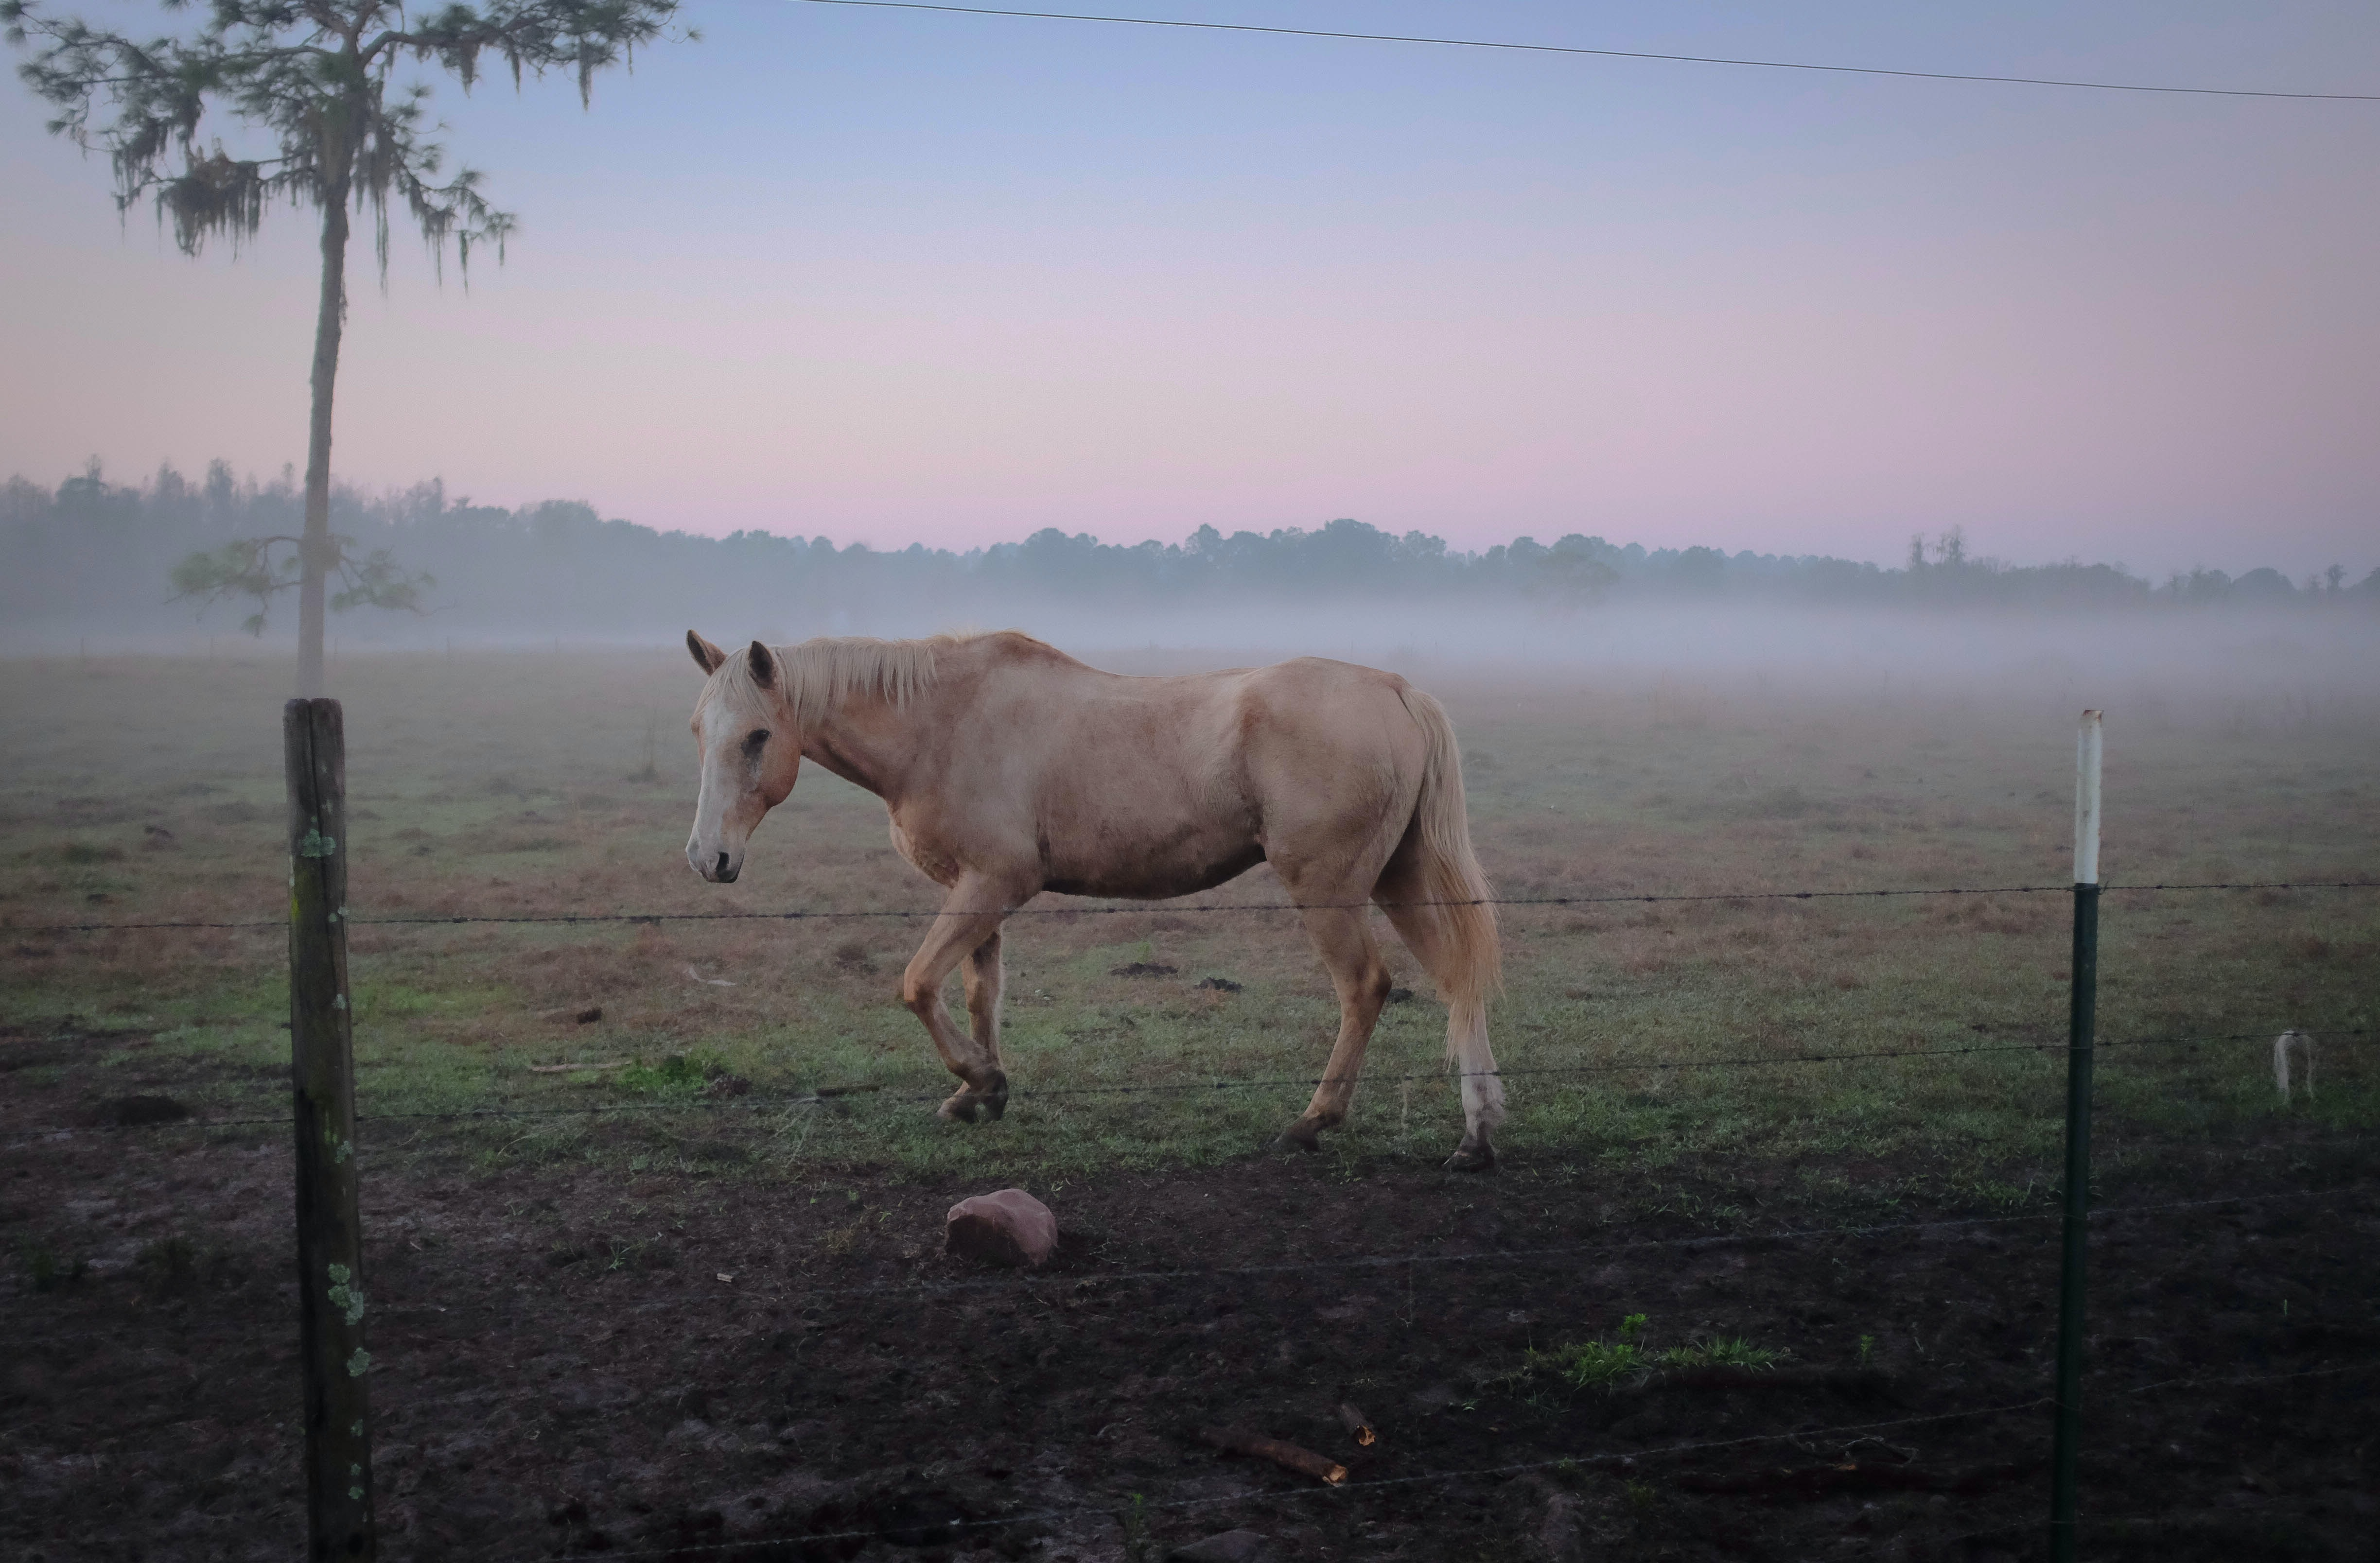 A palomino horse in a barbed wire enclosure on a misty morning